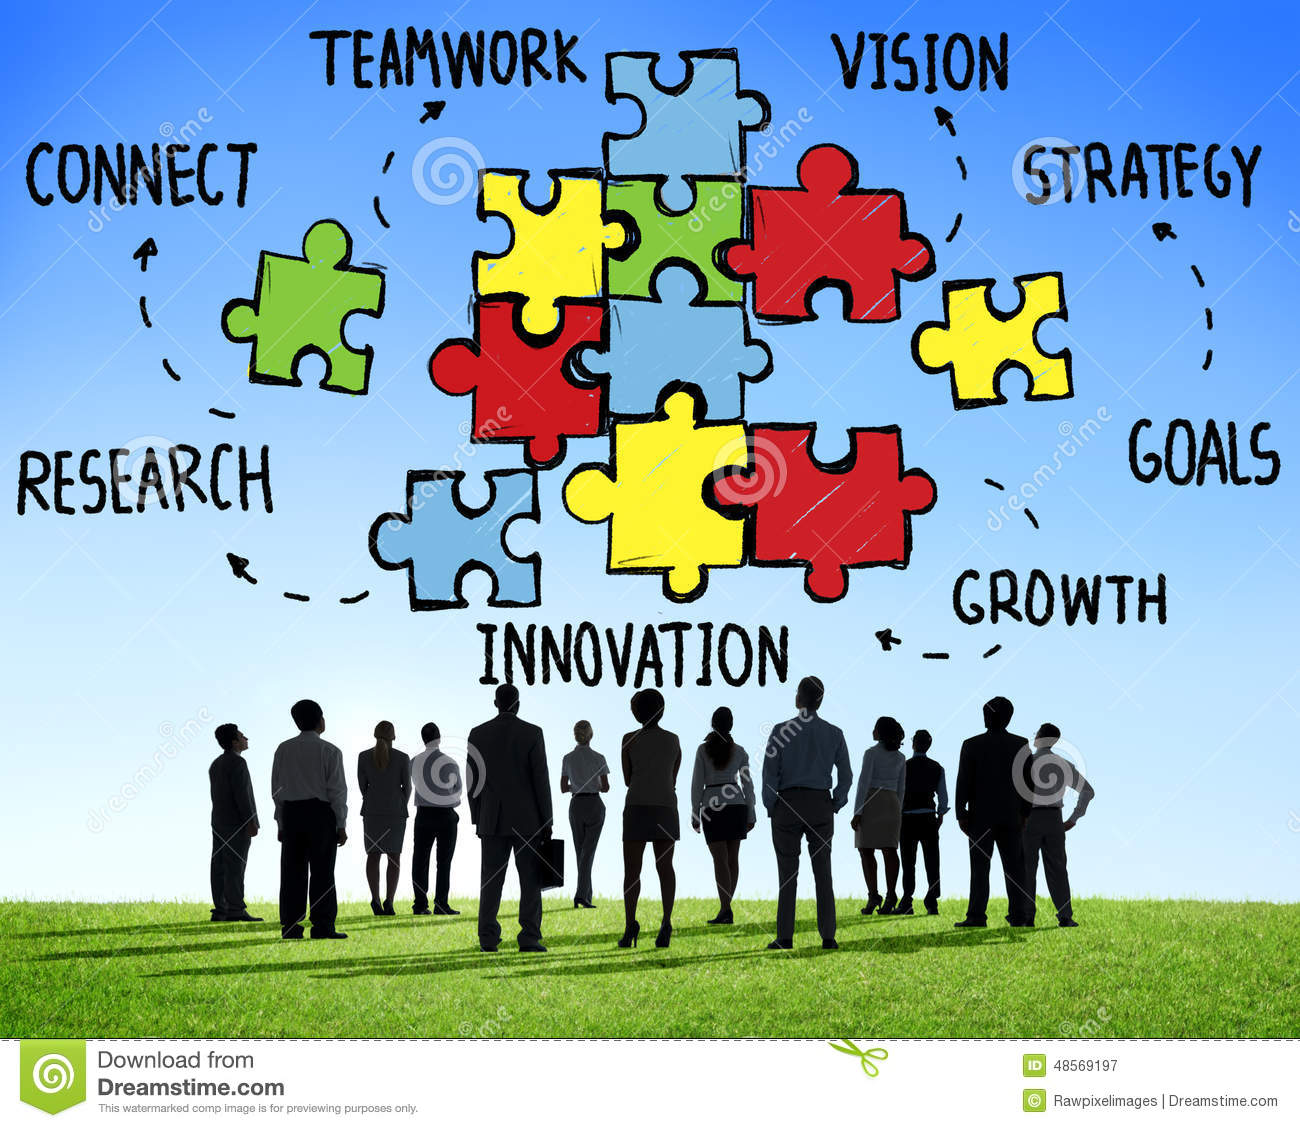 Teamwork Team Connection Strategy Partnership Support